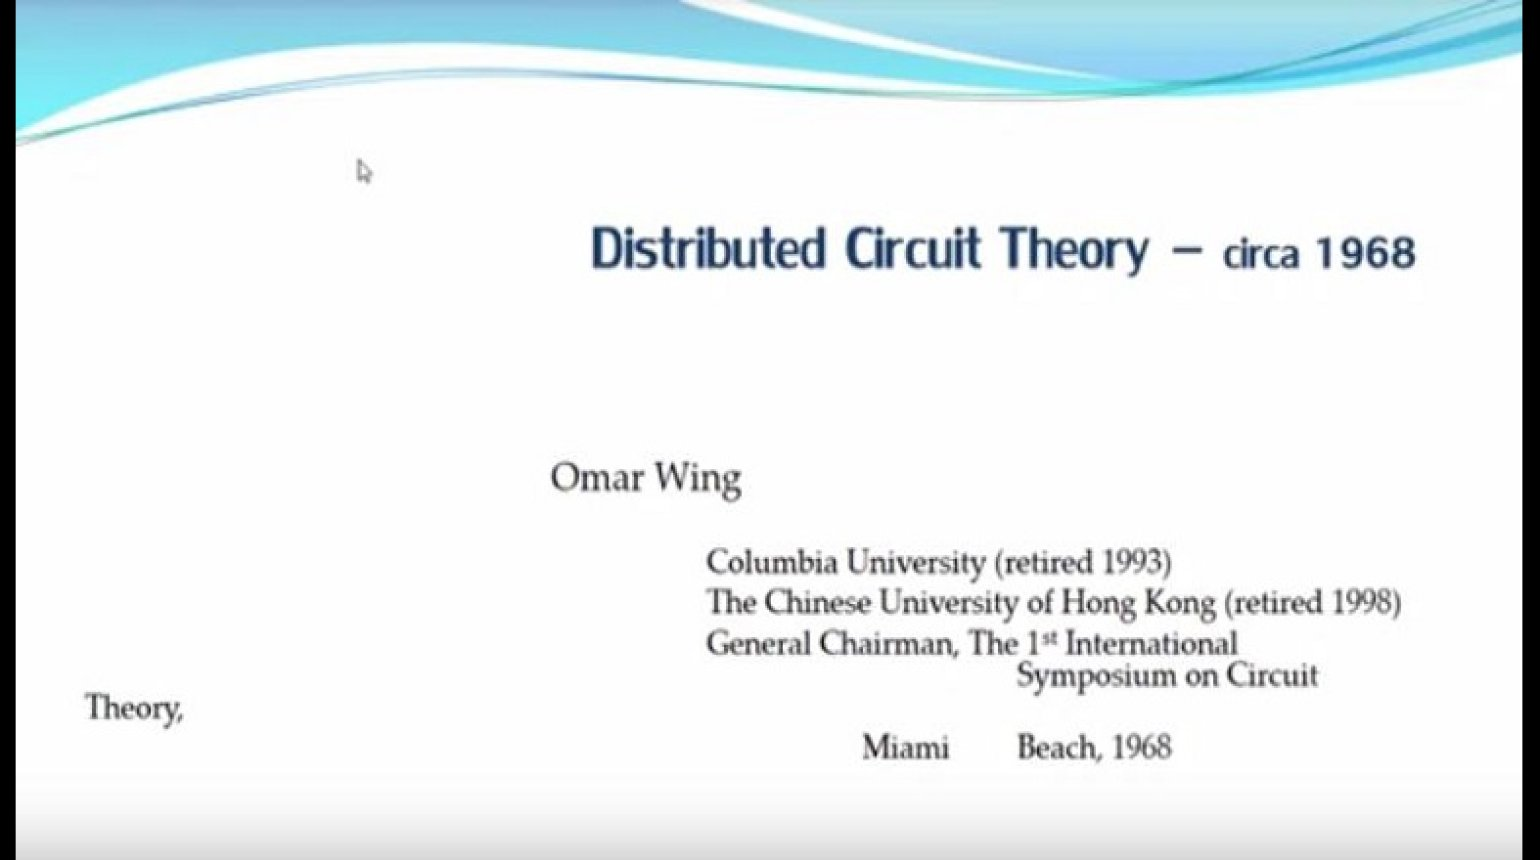 Distributed Circuit Theory - Circa 1968